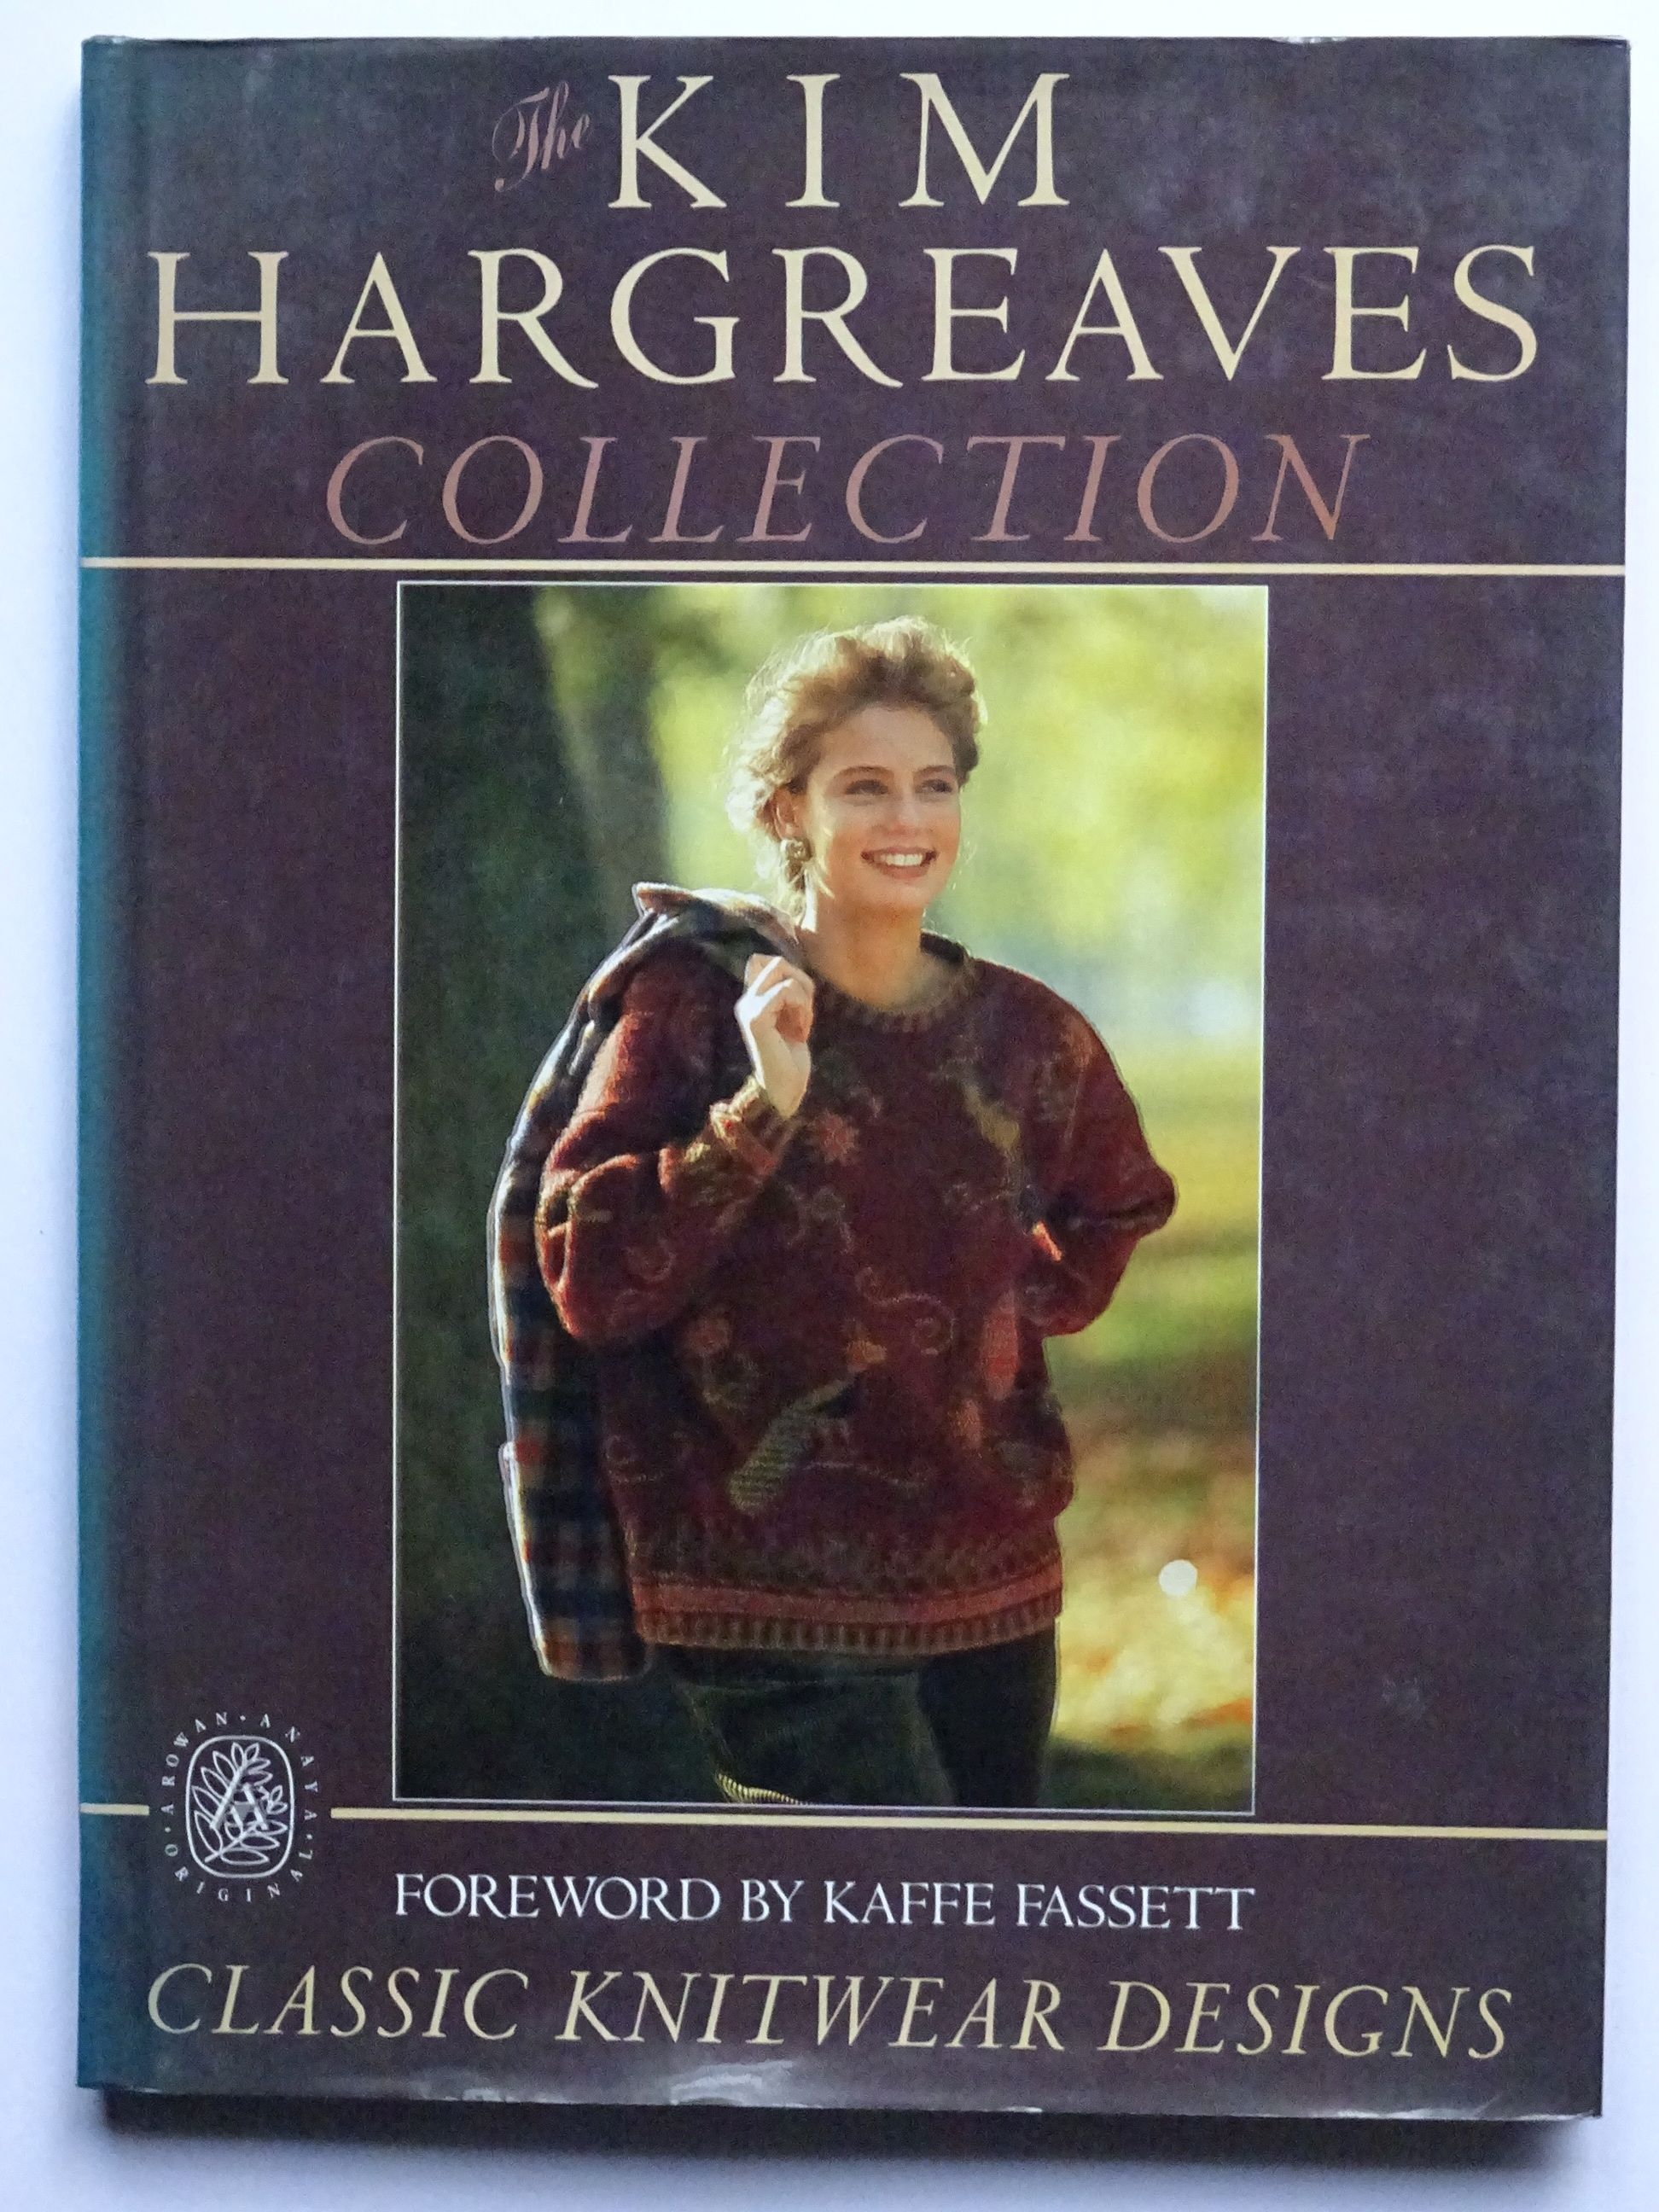 Hargreaves, Kim - The Kim Hargreaves Collection, Classic Knitwear Designs